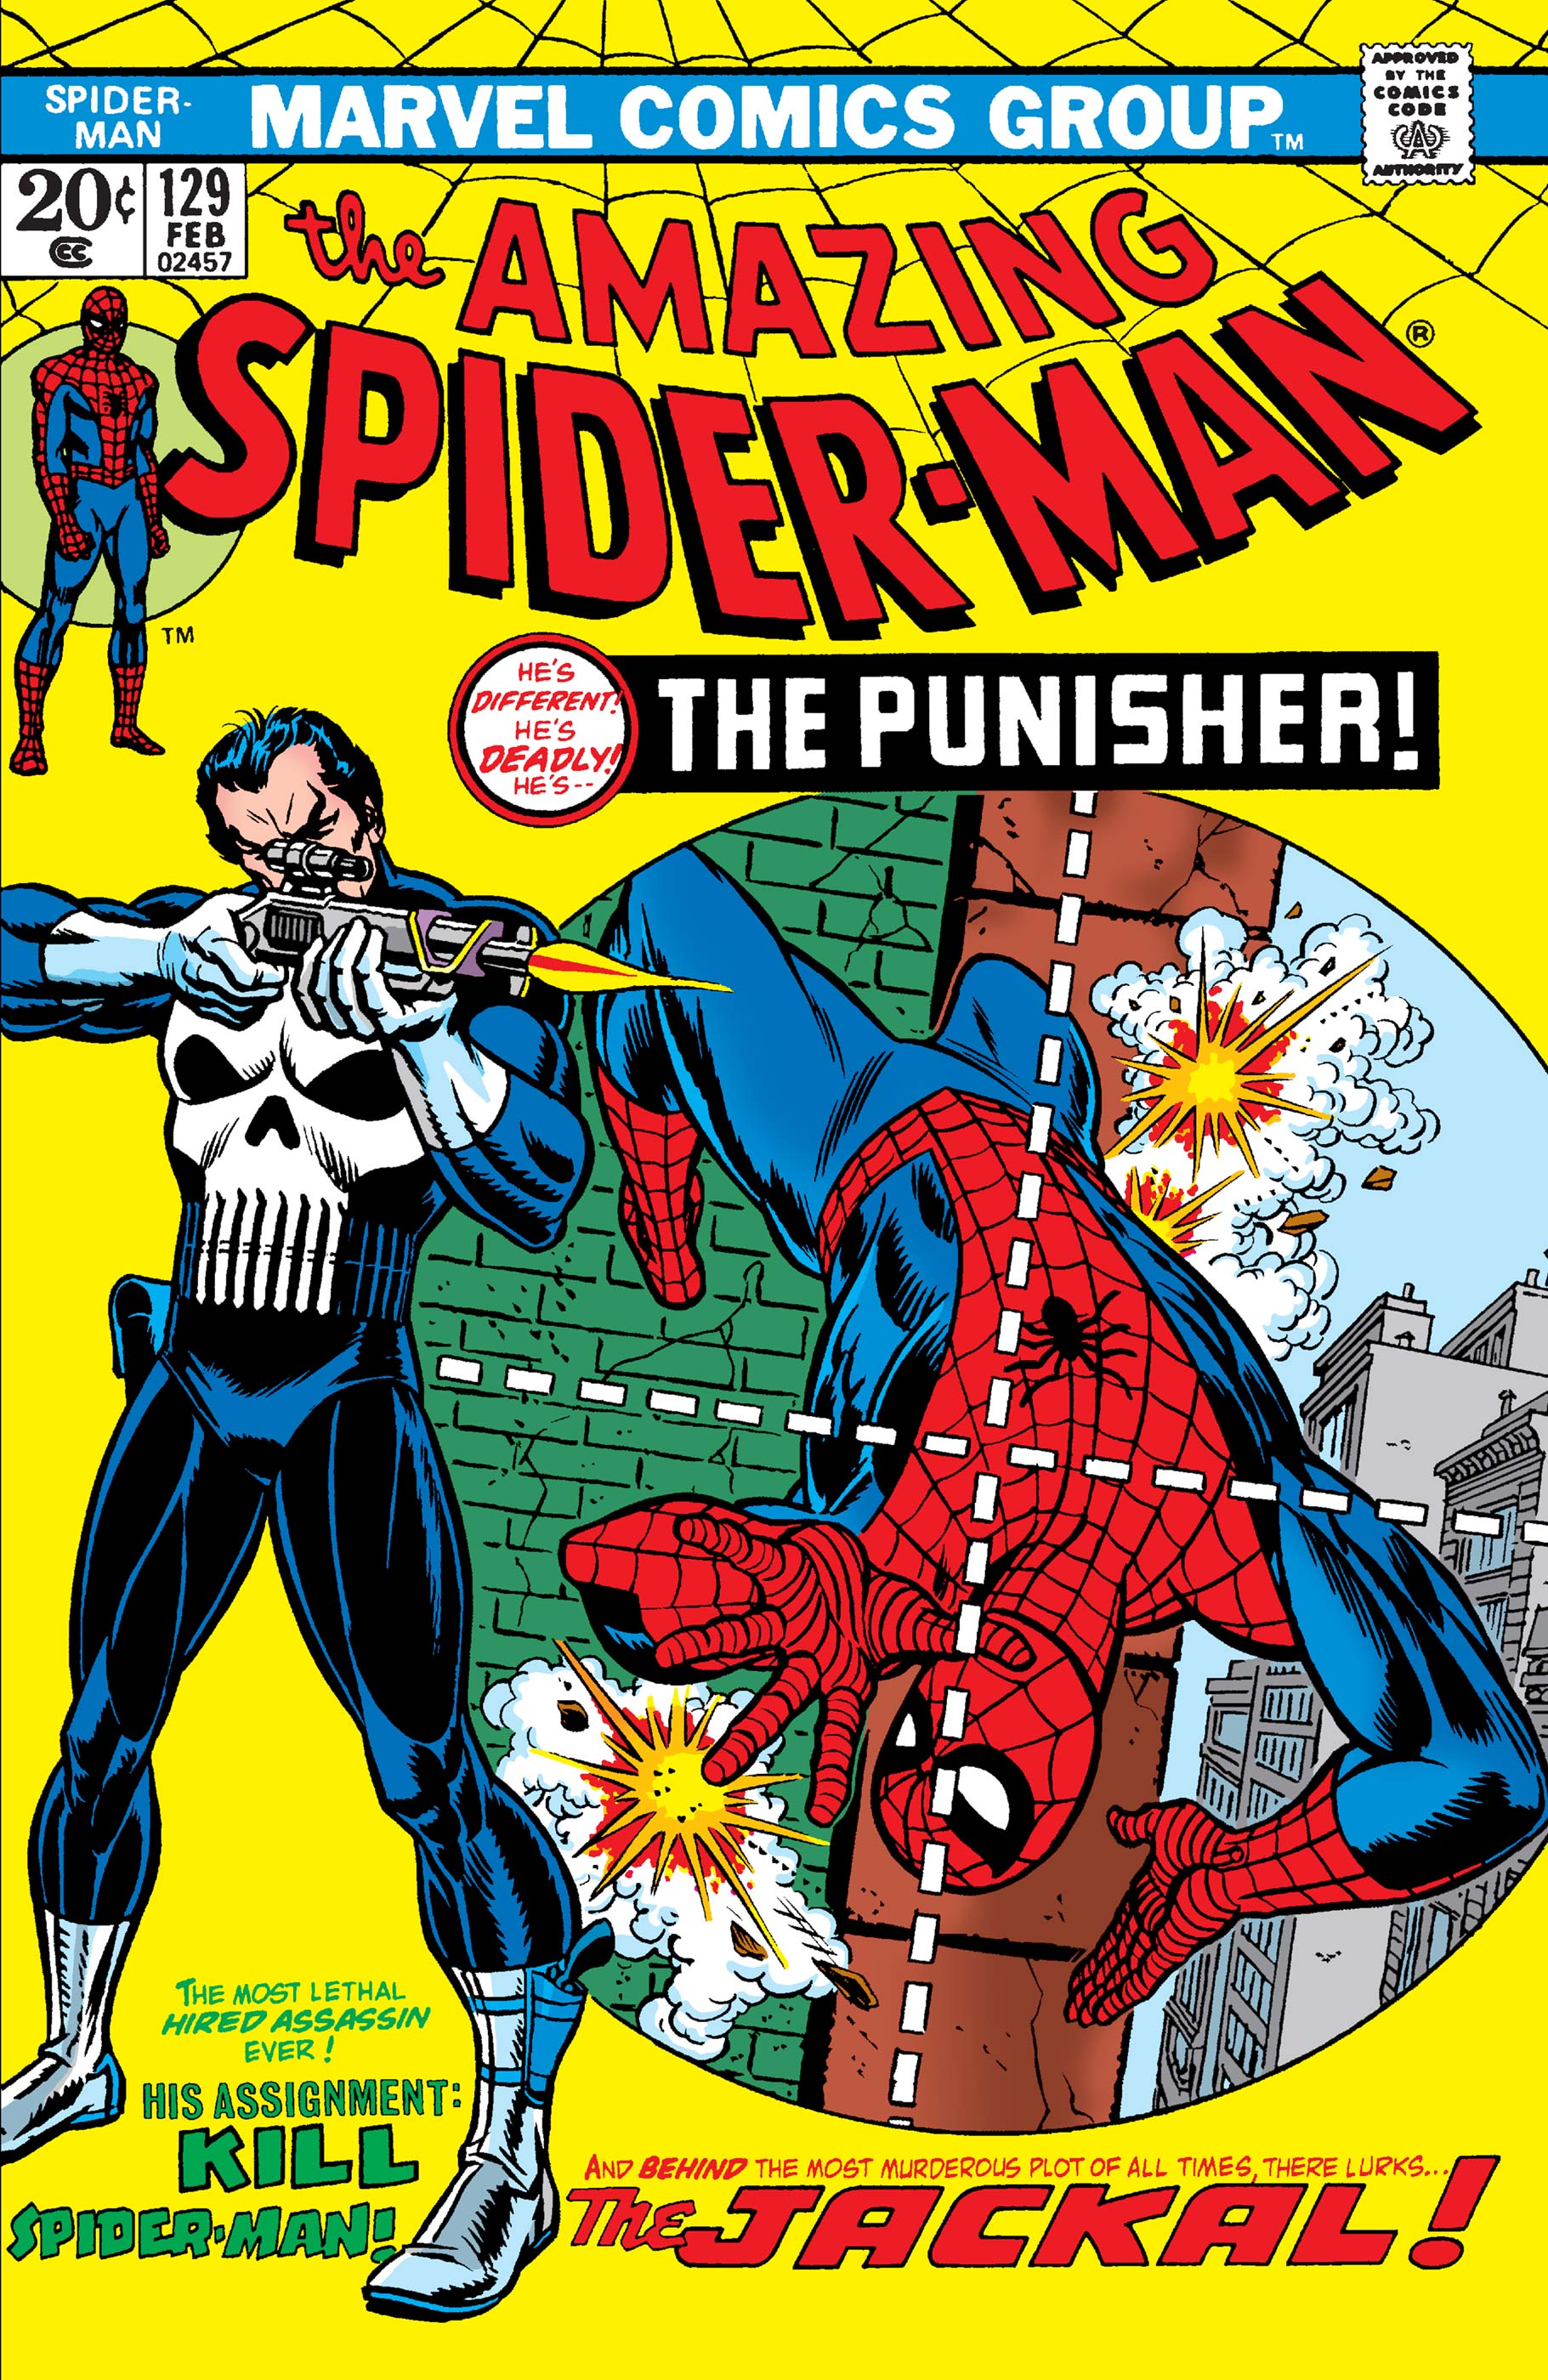 The Amazing Spider-Man (1963) #129